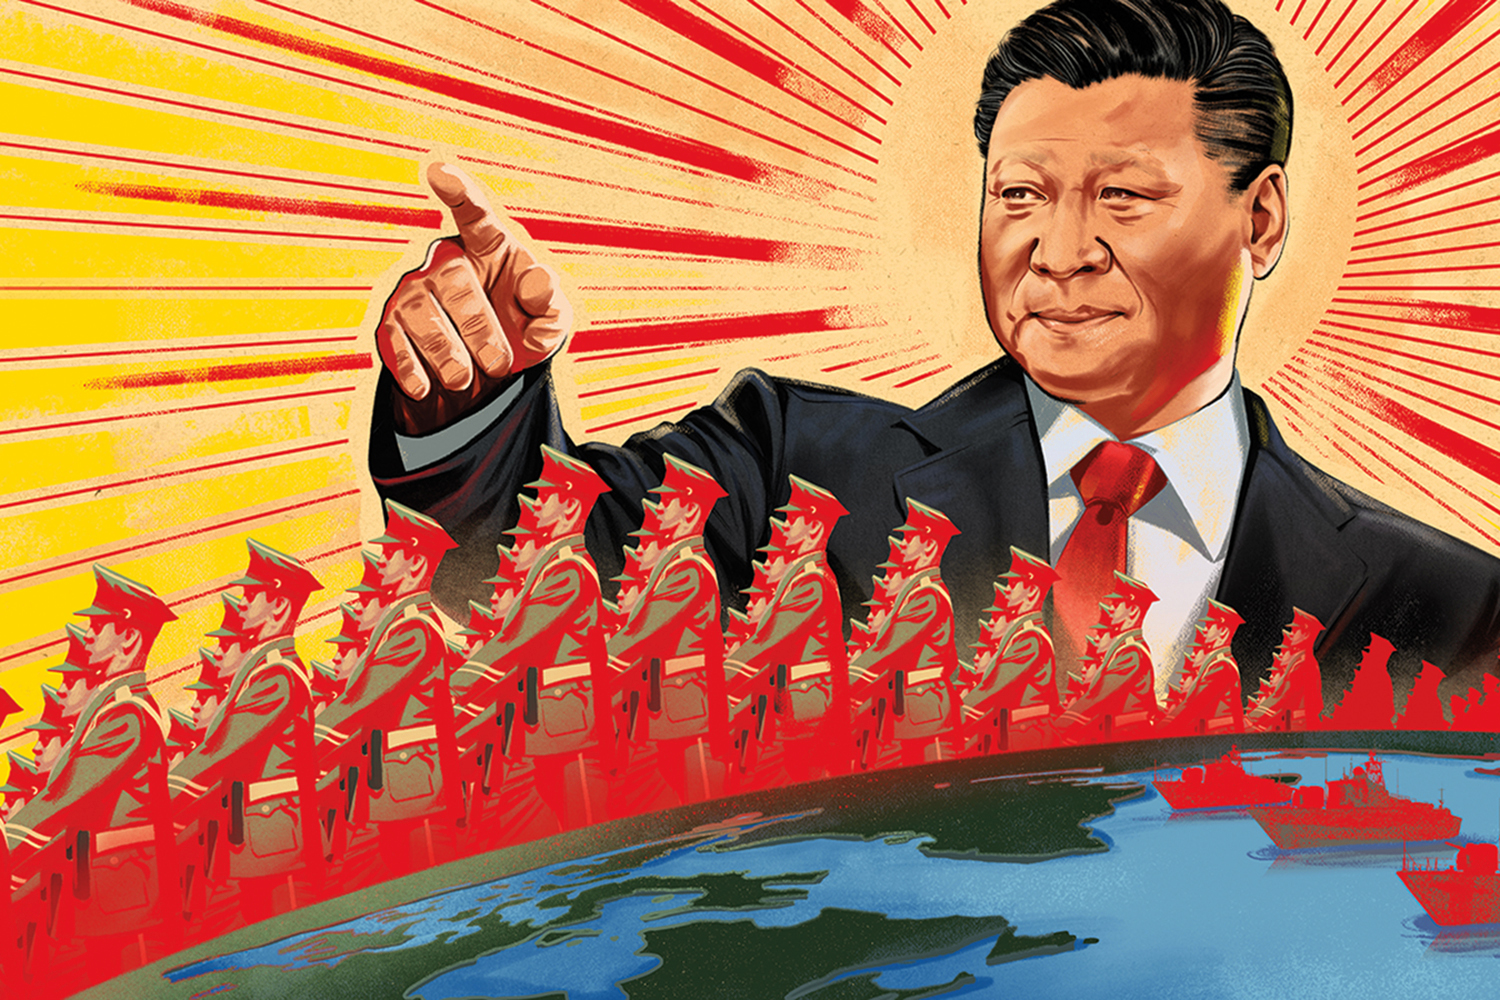 Xi Jinping China Defense Propaganda Maoist Jonathan Bartlett Illustration Article